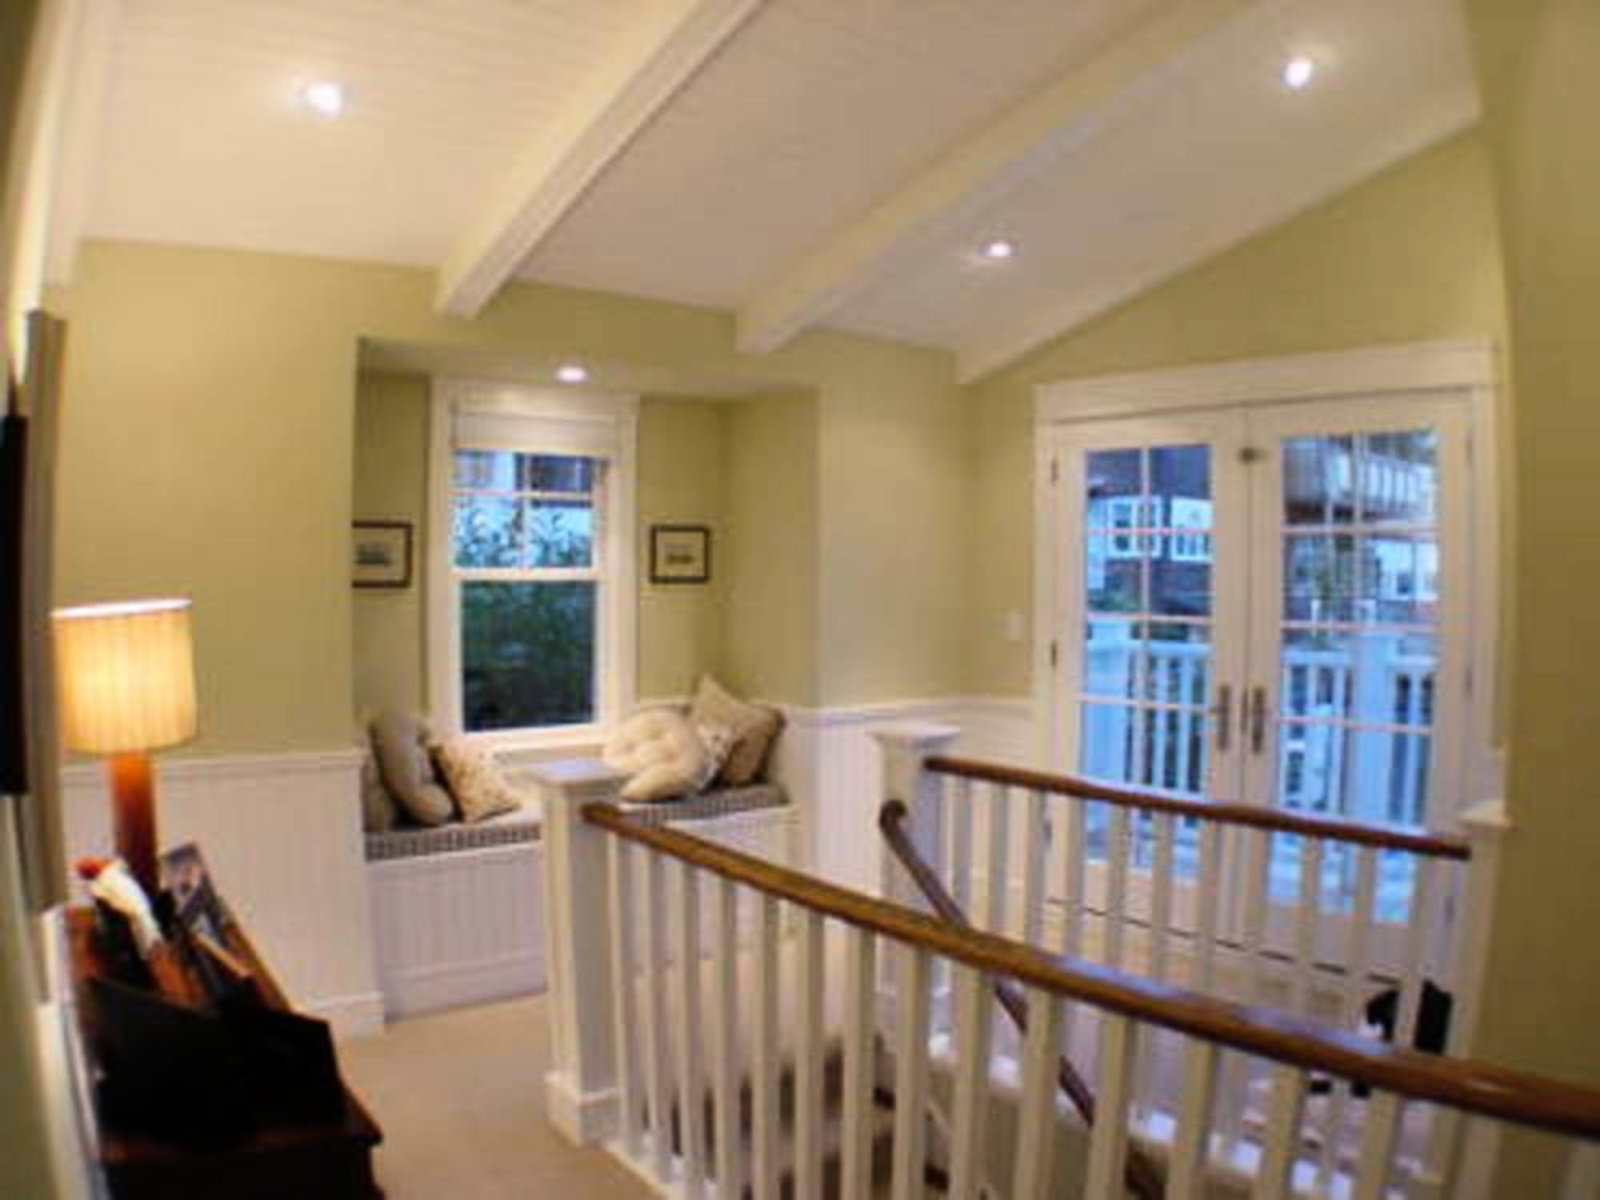 Upper Floor Landing French Doors leading to balcony, cozy bay window seat.